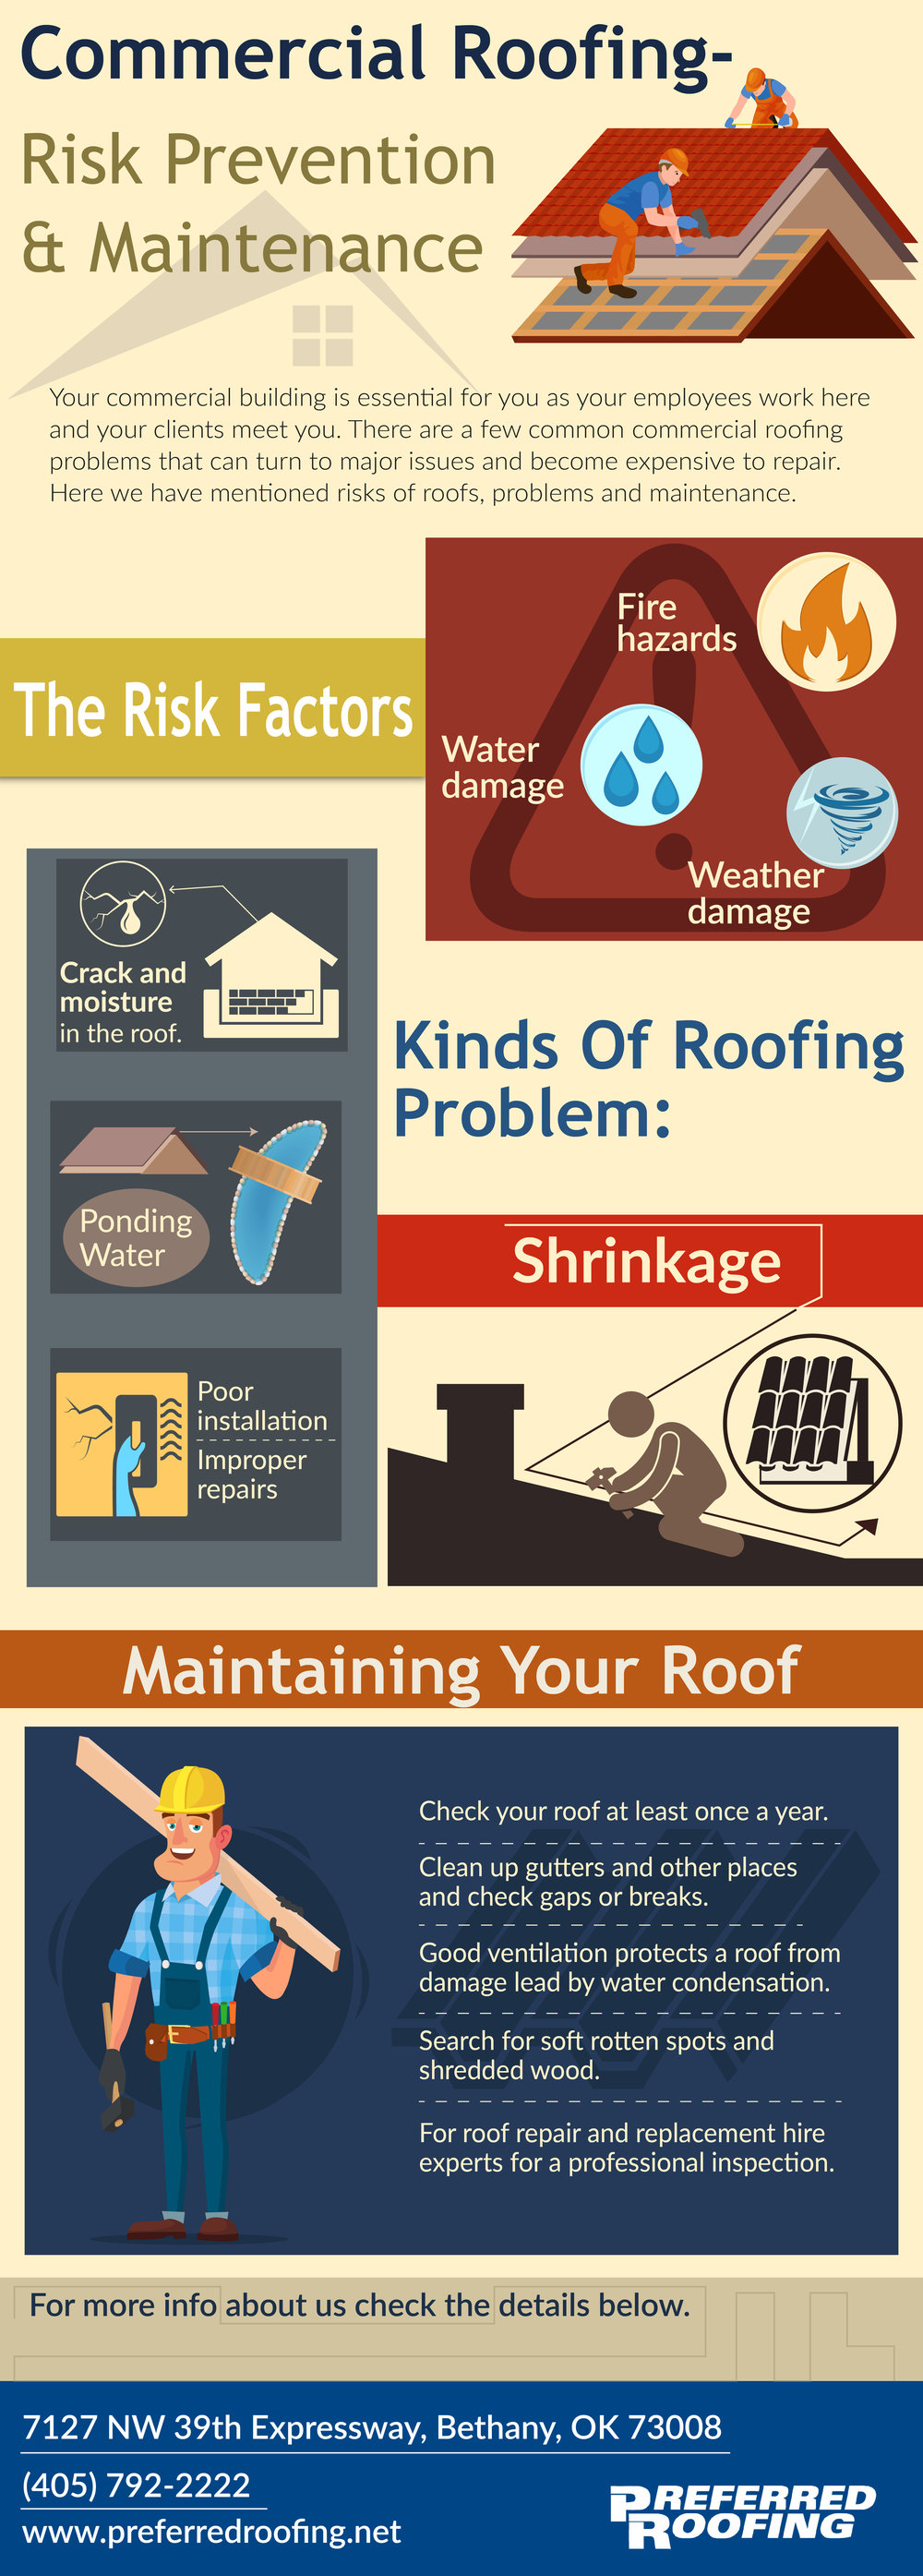 Preferred roofing_commercial roofing Dallas.jpg